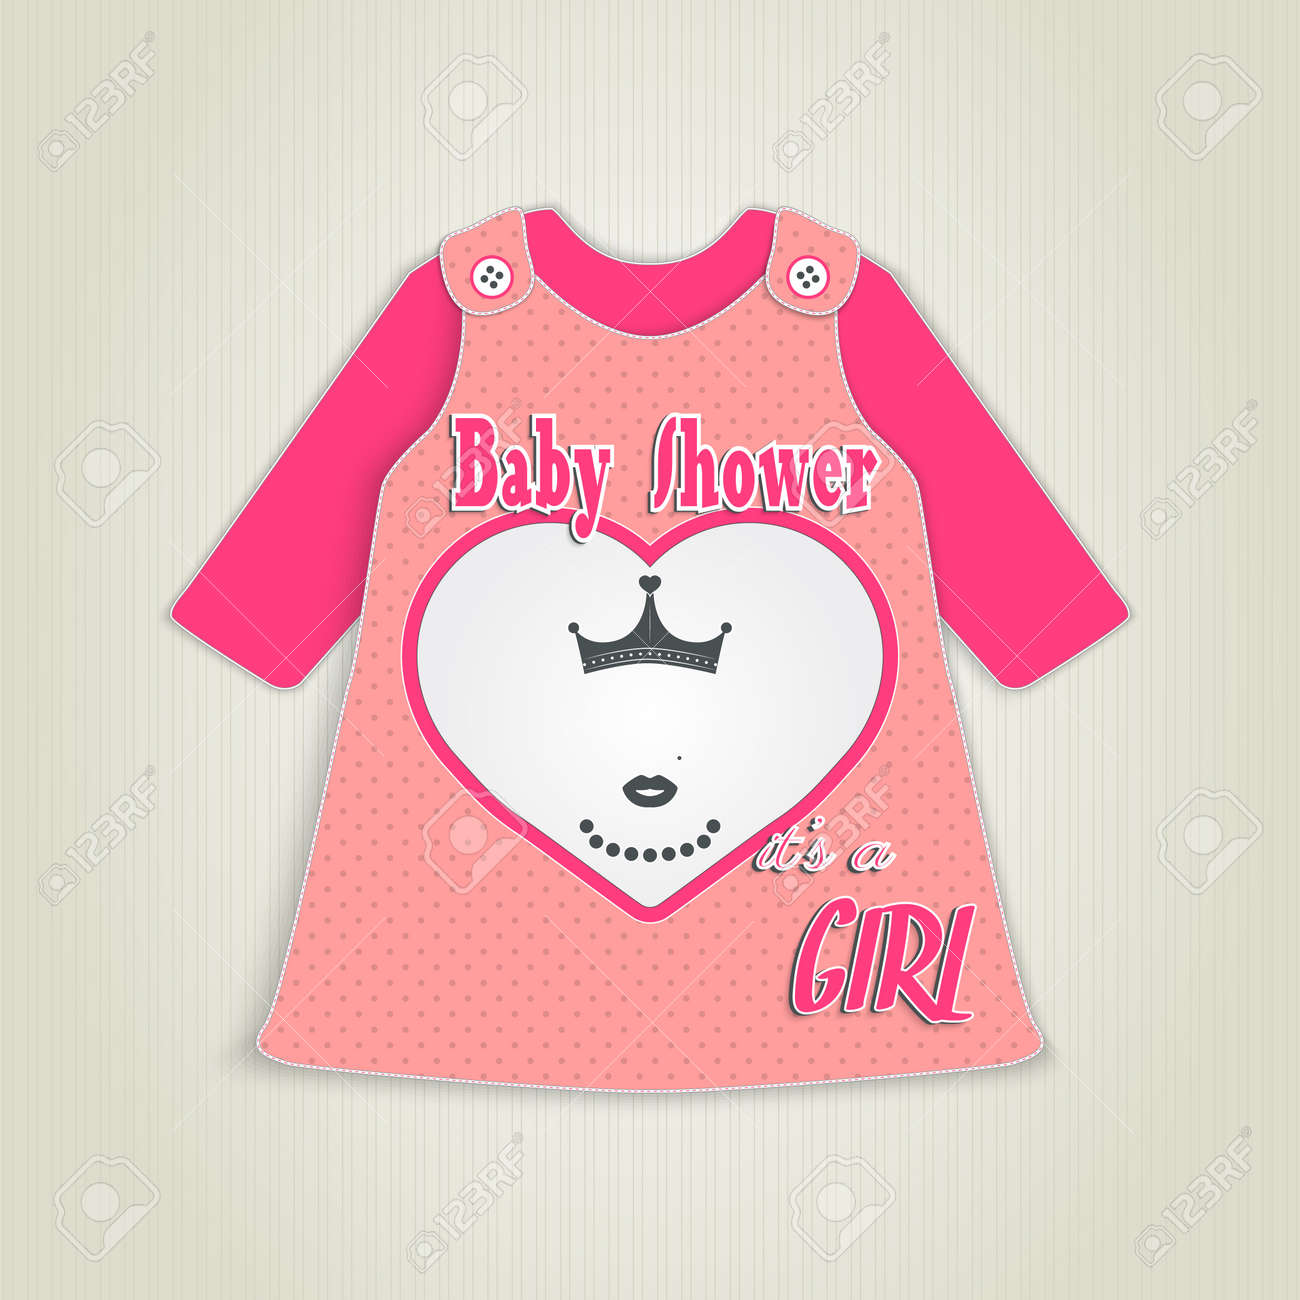 Card In The Form Of Clothing. Baby Shower Invitation With Princess ...